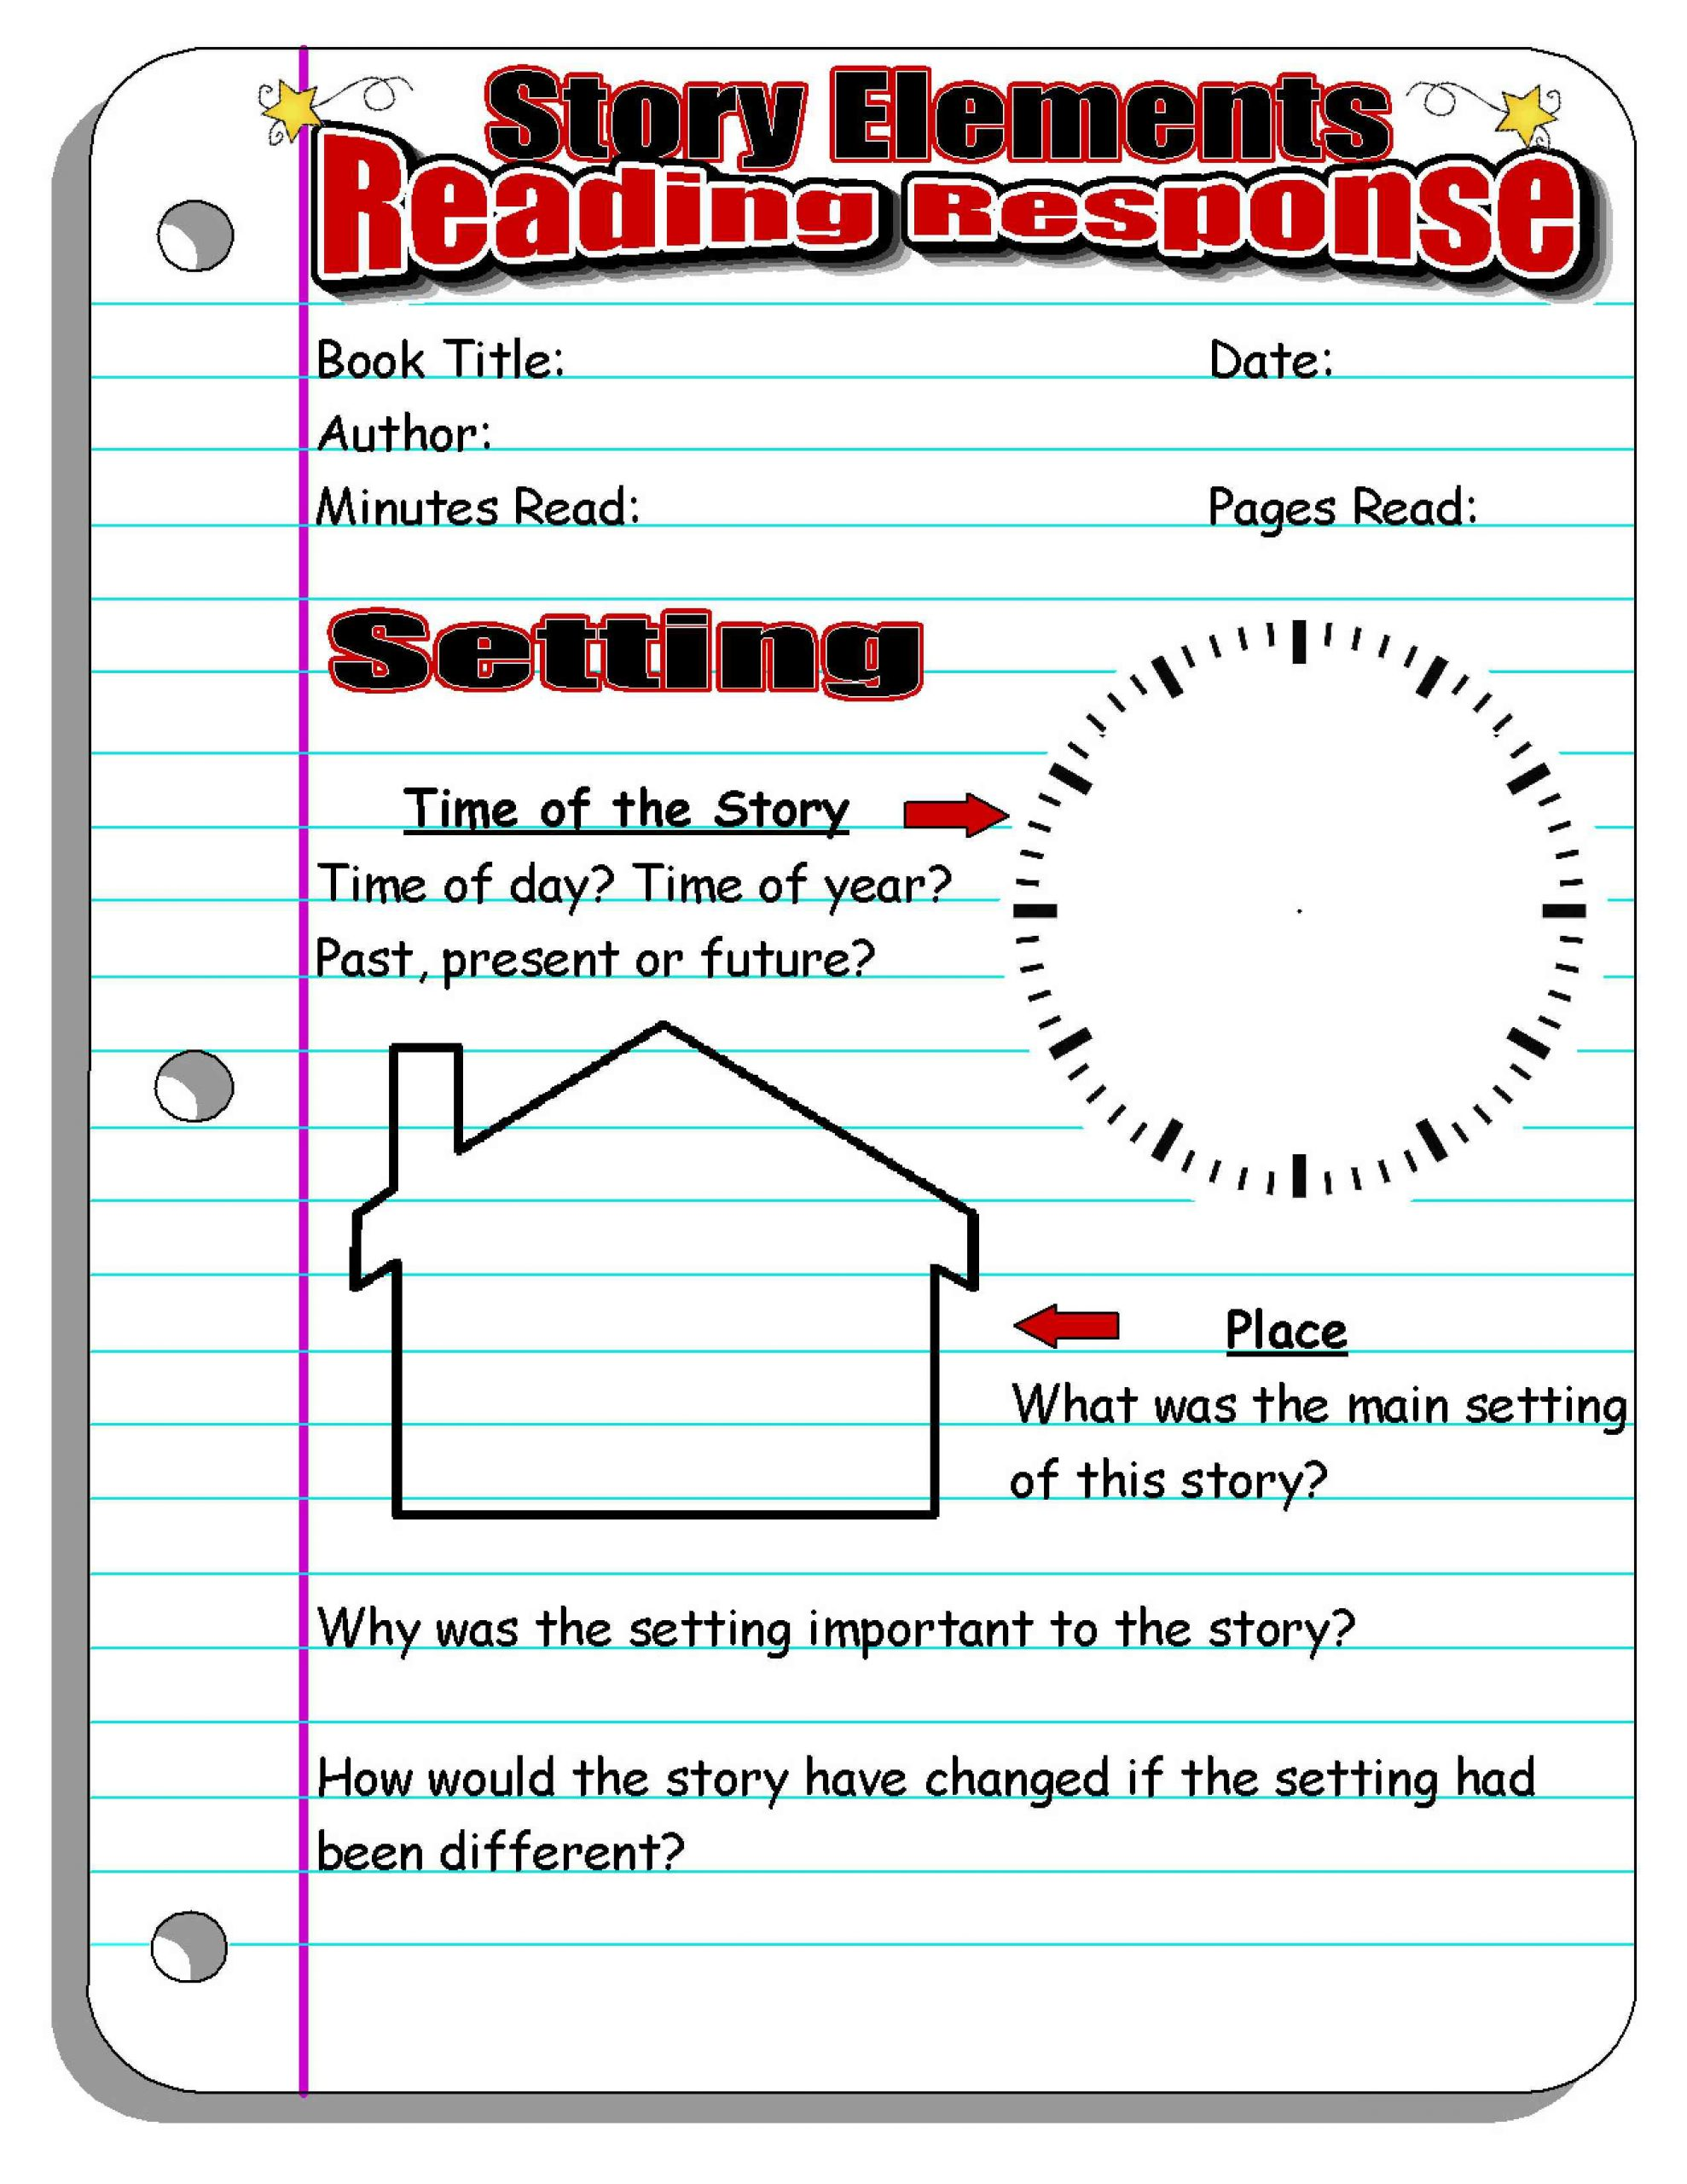 Reading and Responding Worksheets Reading Response forms and Graphic organizers